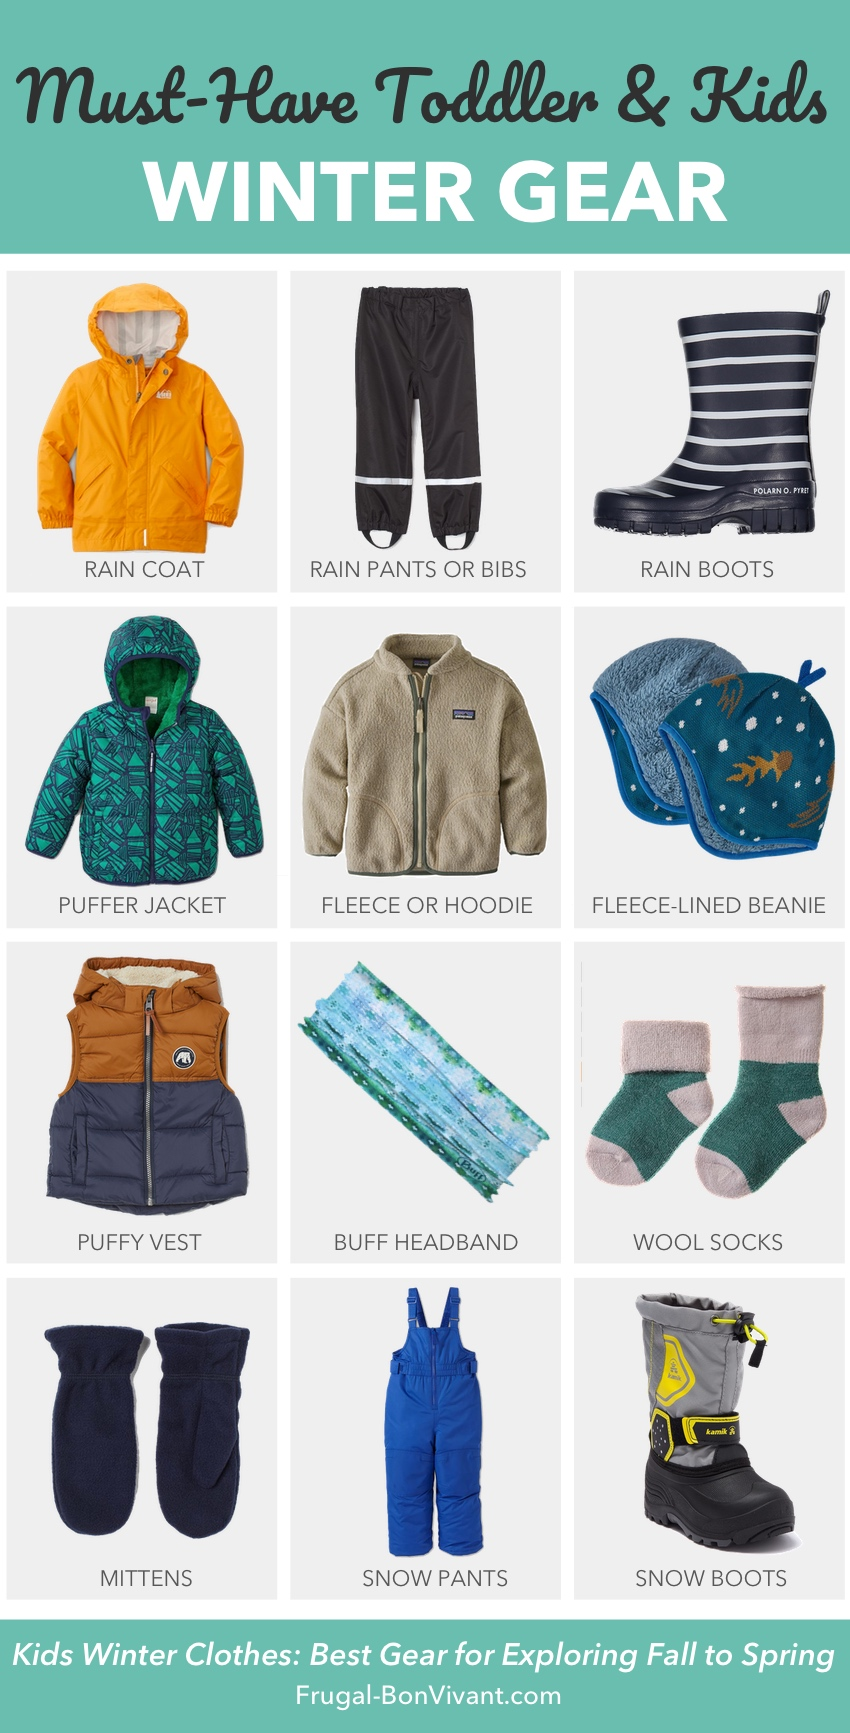 Kids Winter Clothes - Cold Weather Essential for Toddlers and Preschoolers